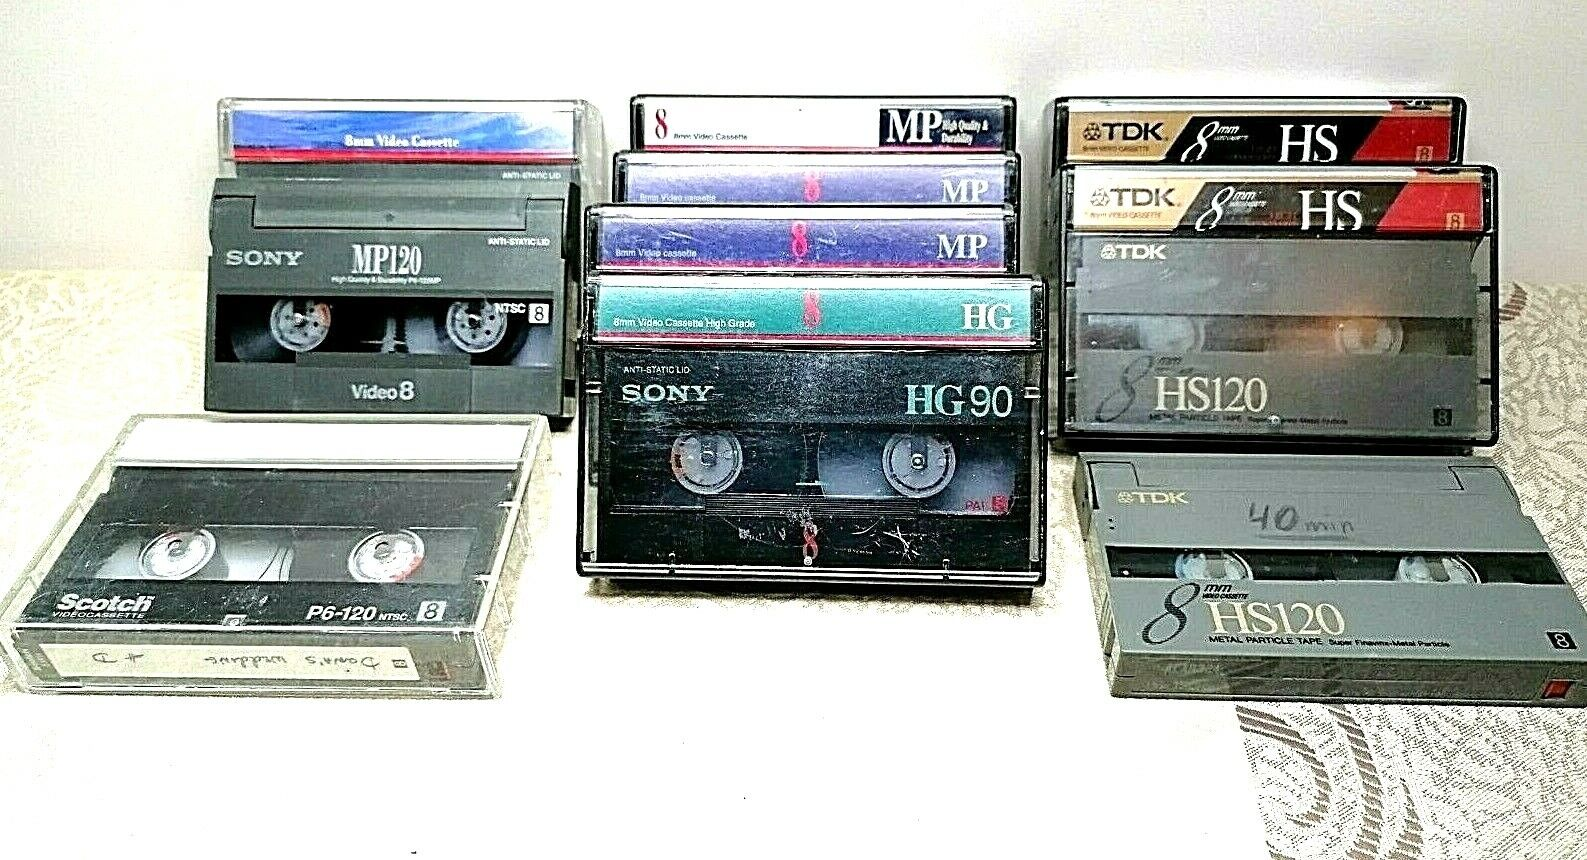 CamCorder 8mm video cassettes Lot of 10 3TDK HS120 6SONY MP120 MP90 HG90 Scotch